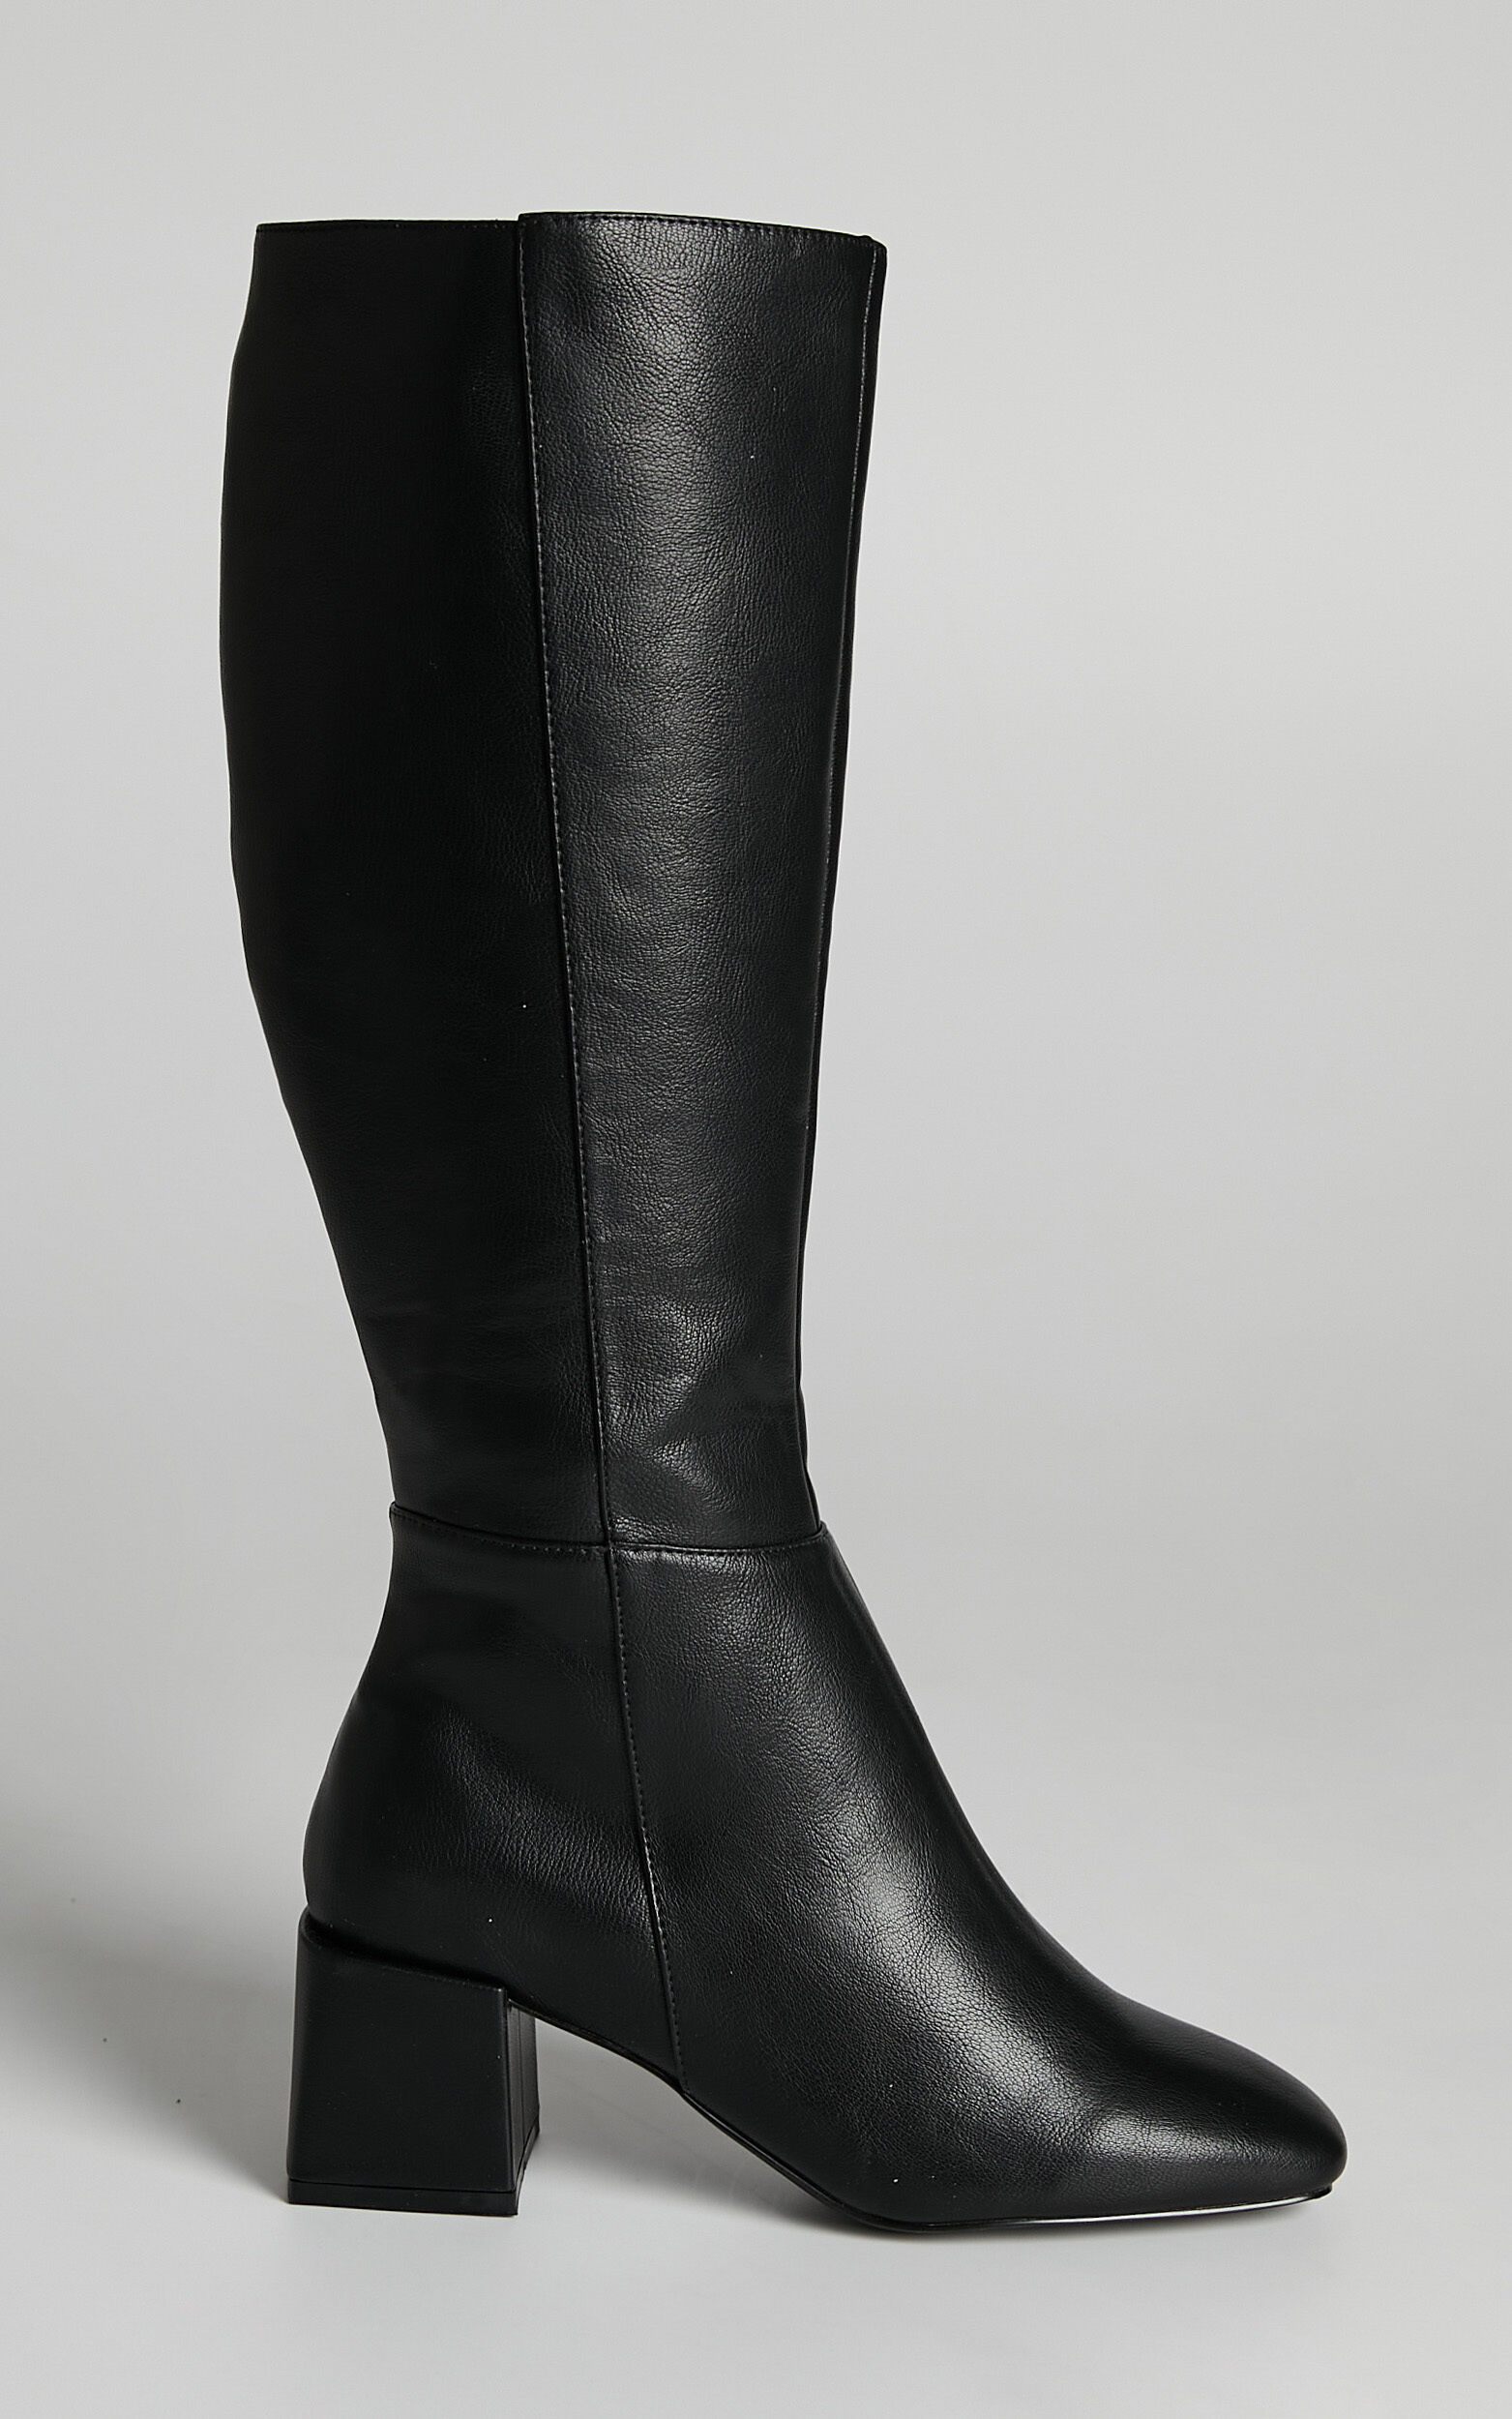 Therapy - Wolf Boots in Black Matte PU - 05, BLK1, super-hi-res image number null